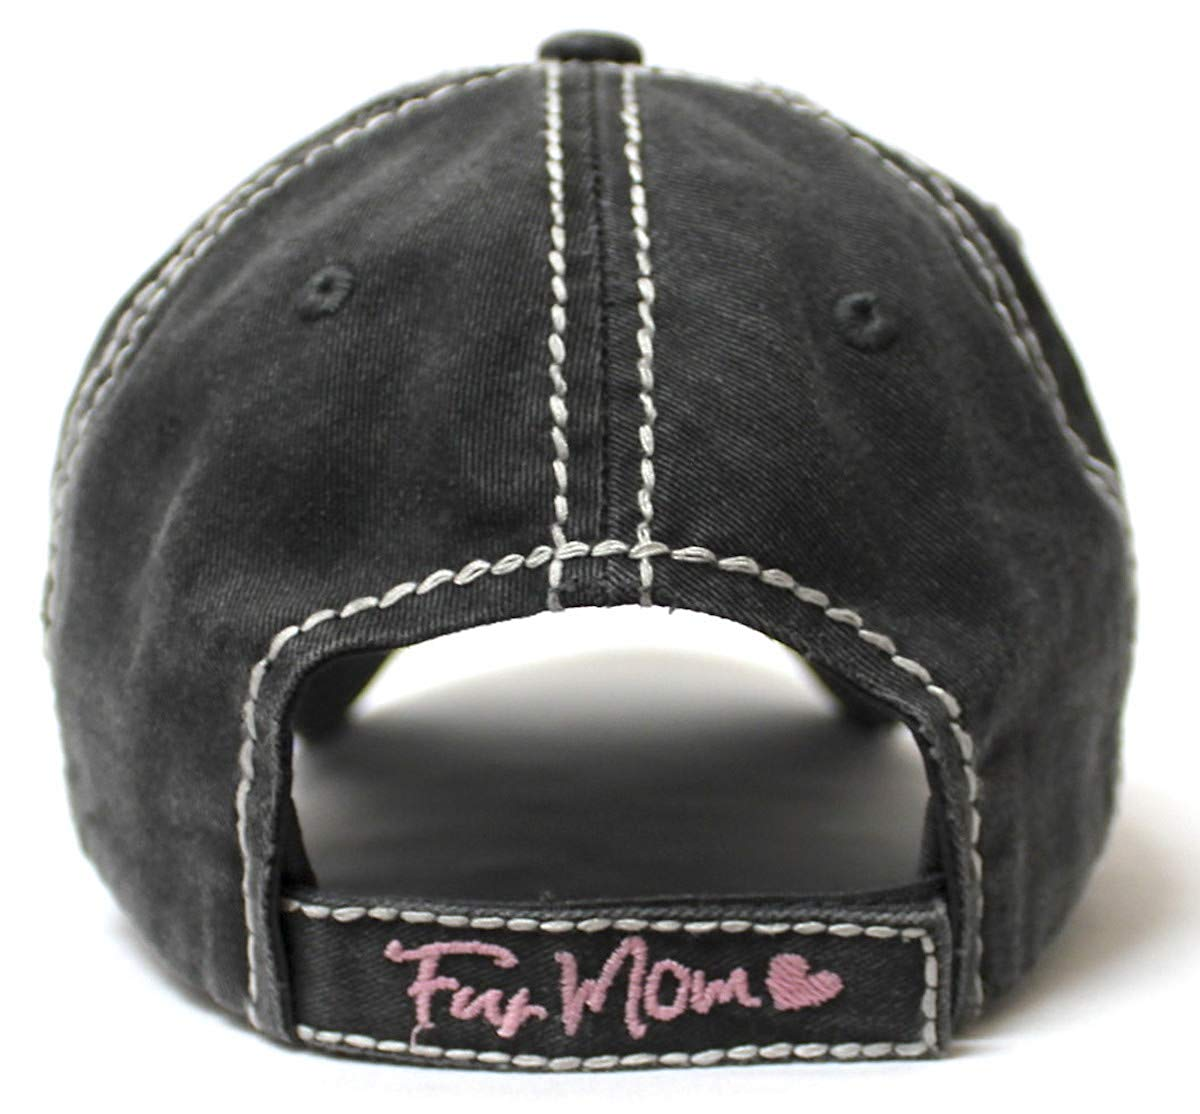 Women's Distressed Graphic Cap Fur Mom Fuzzy Dog Paw Embroidery, Blk - Caps 'N Vintage